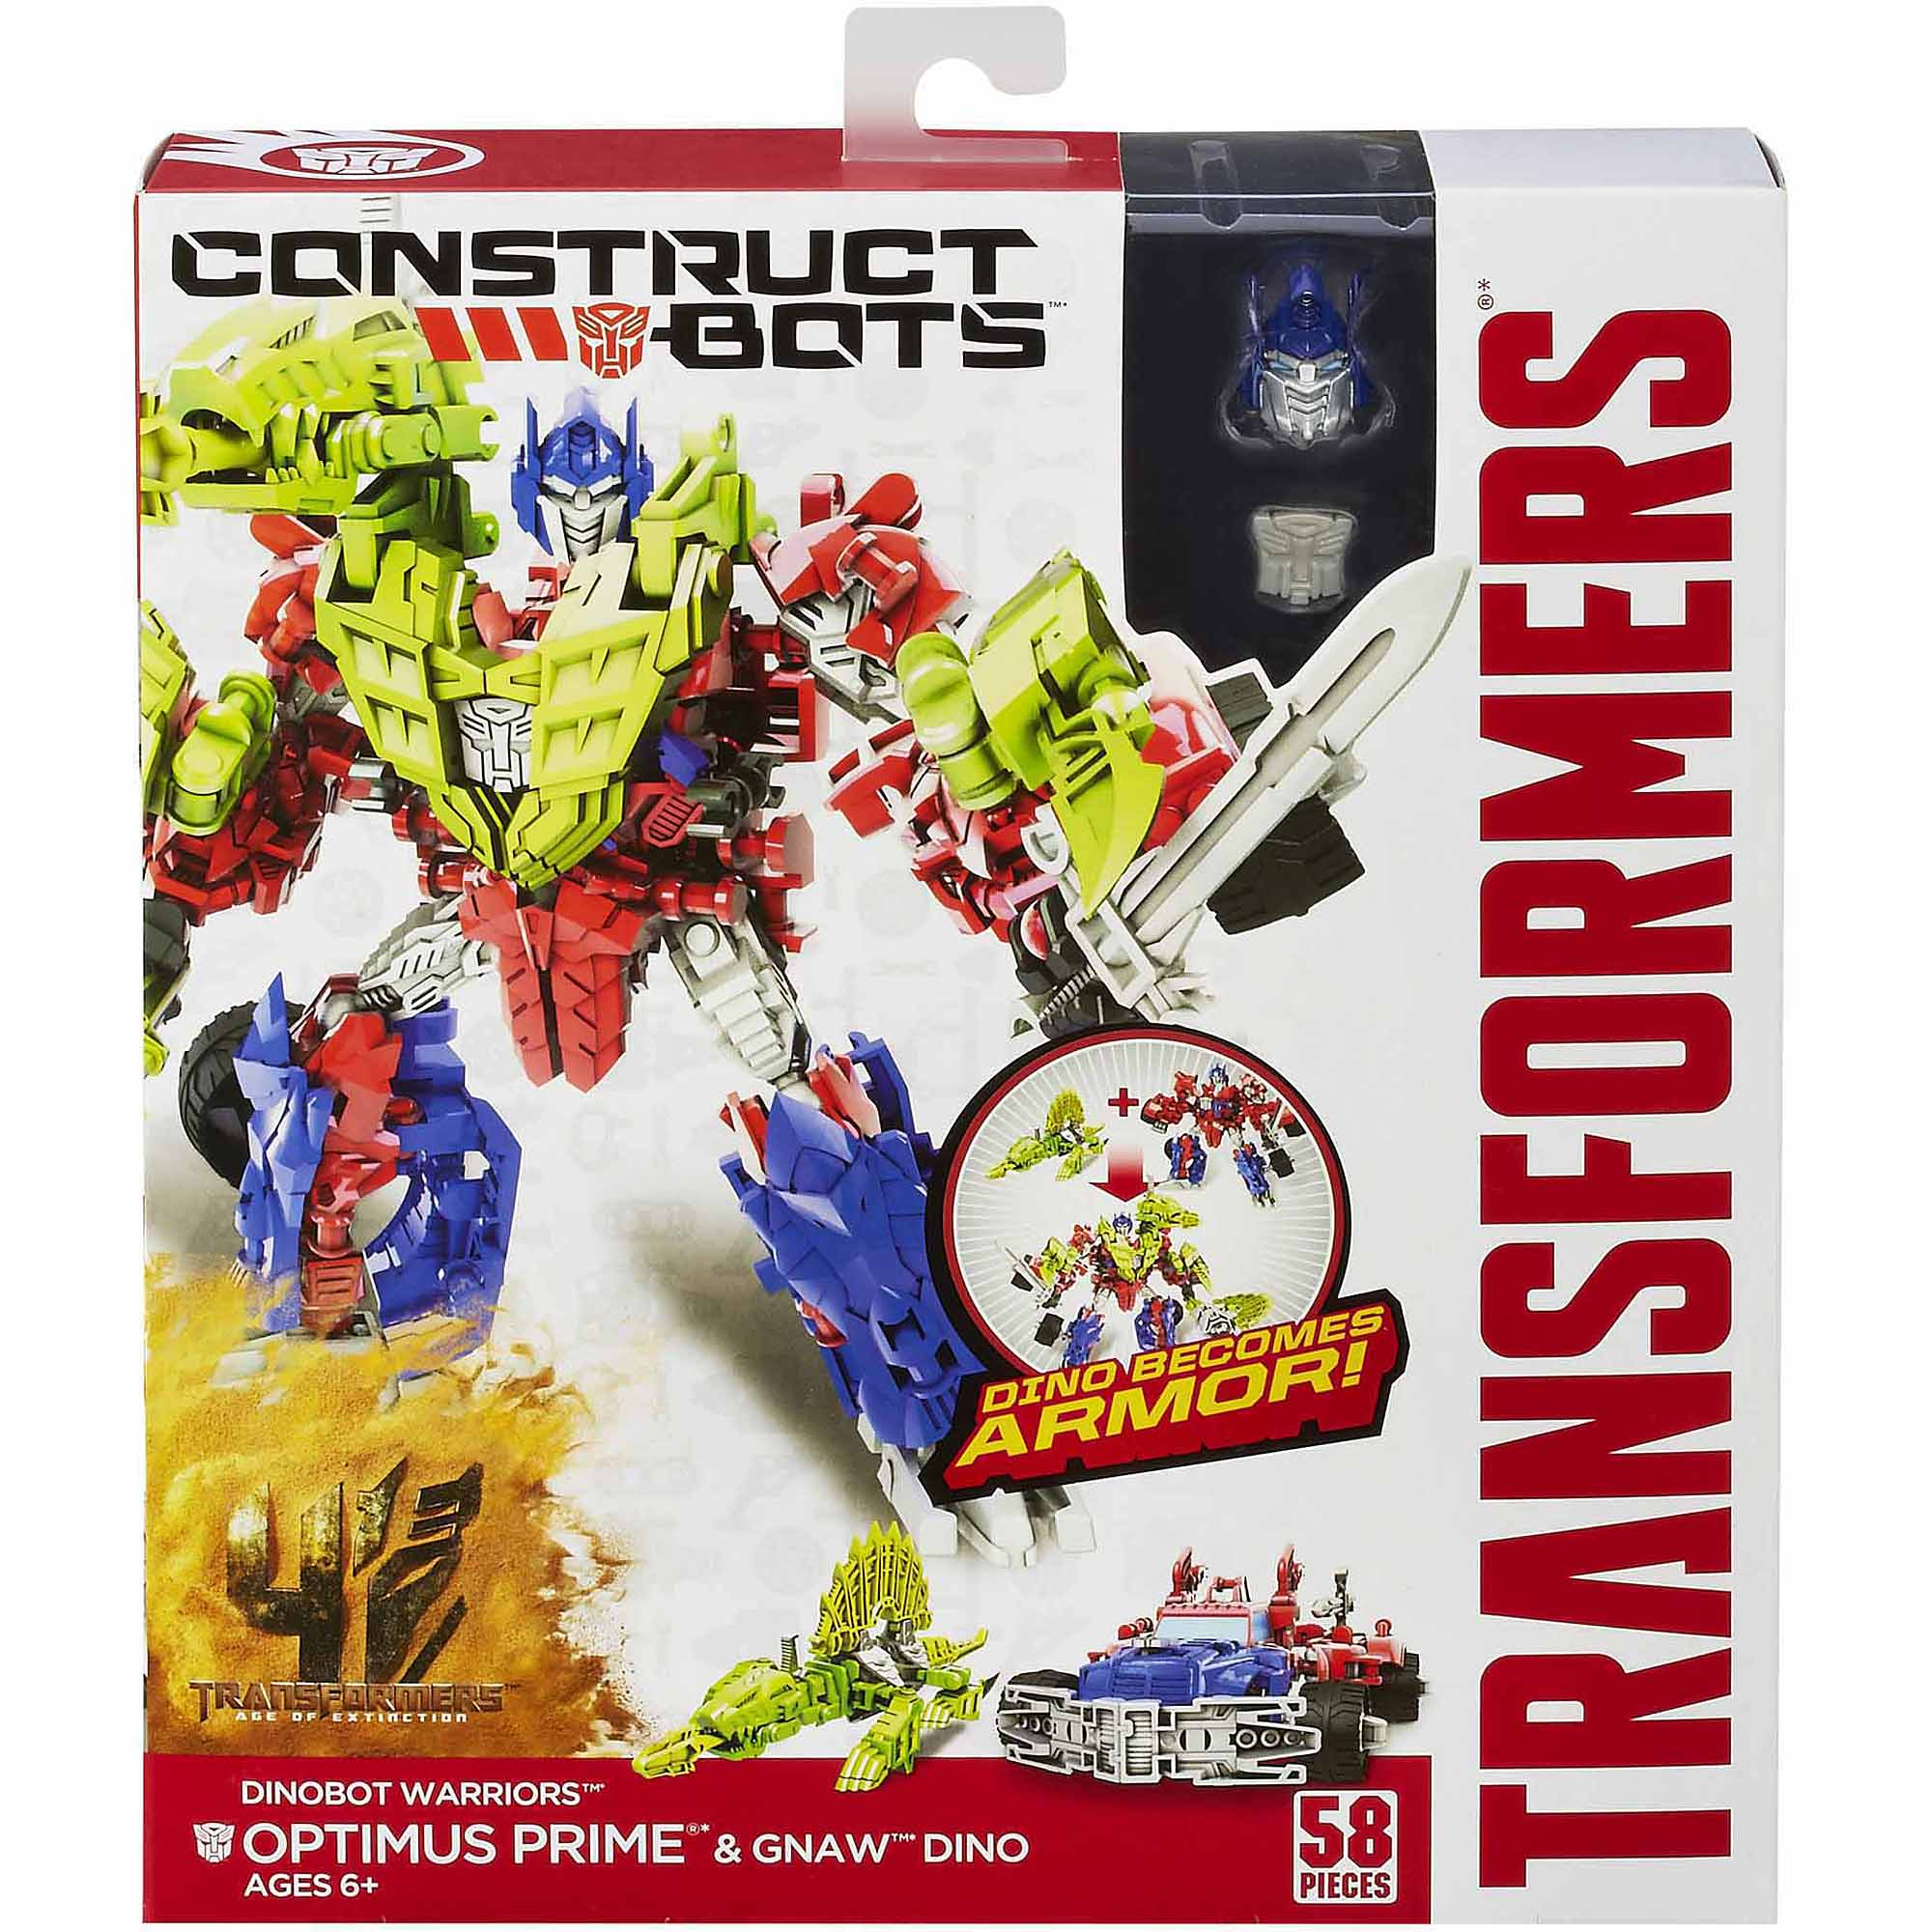 Free toys Transformer Construct A Bots Dino Warriors 2 Figure Bargain Bundle